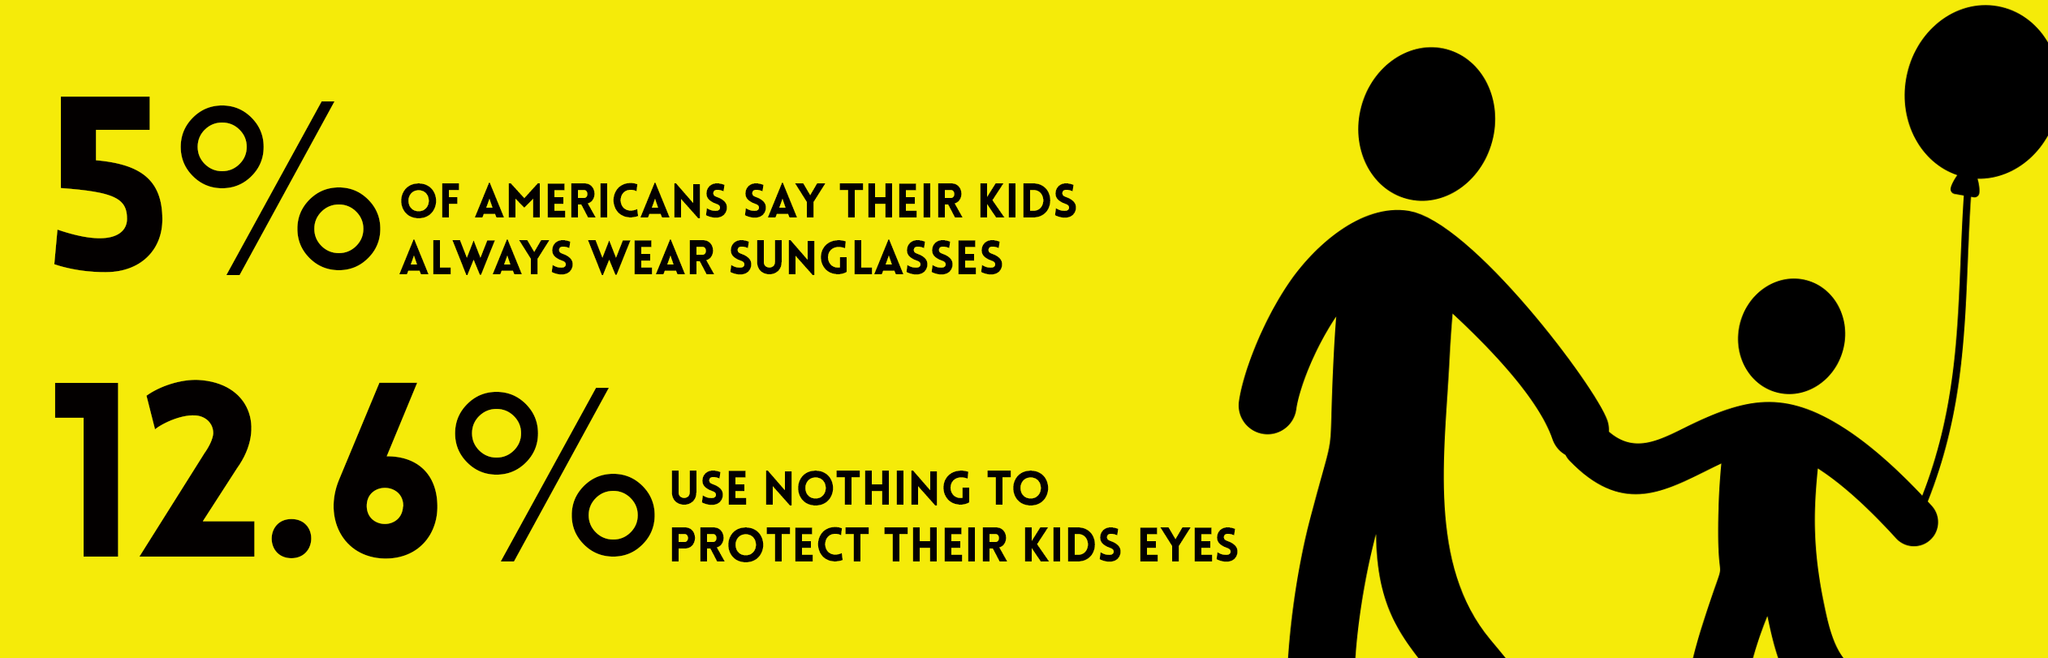 5 percent of americans say their kids wear sunglasses all the time, 12 percent says their kids use nothing